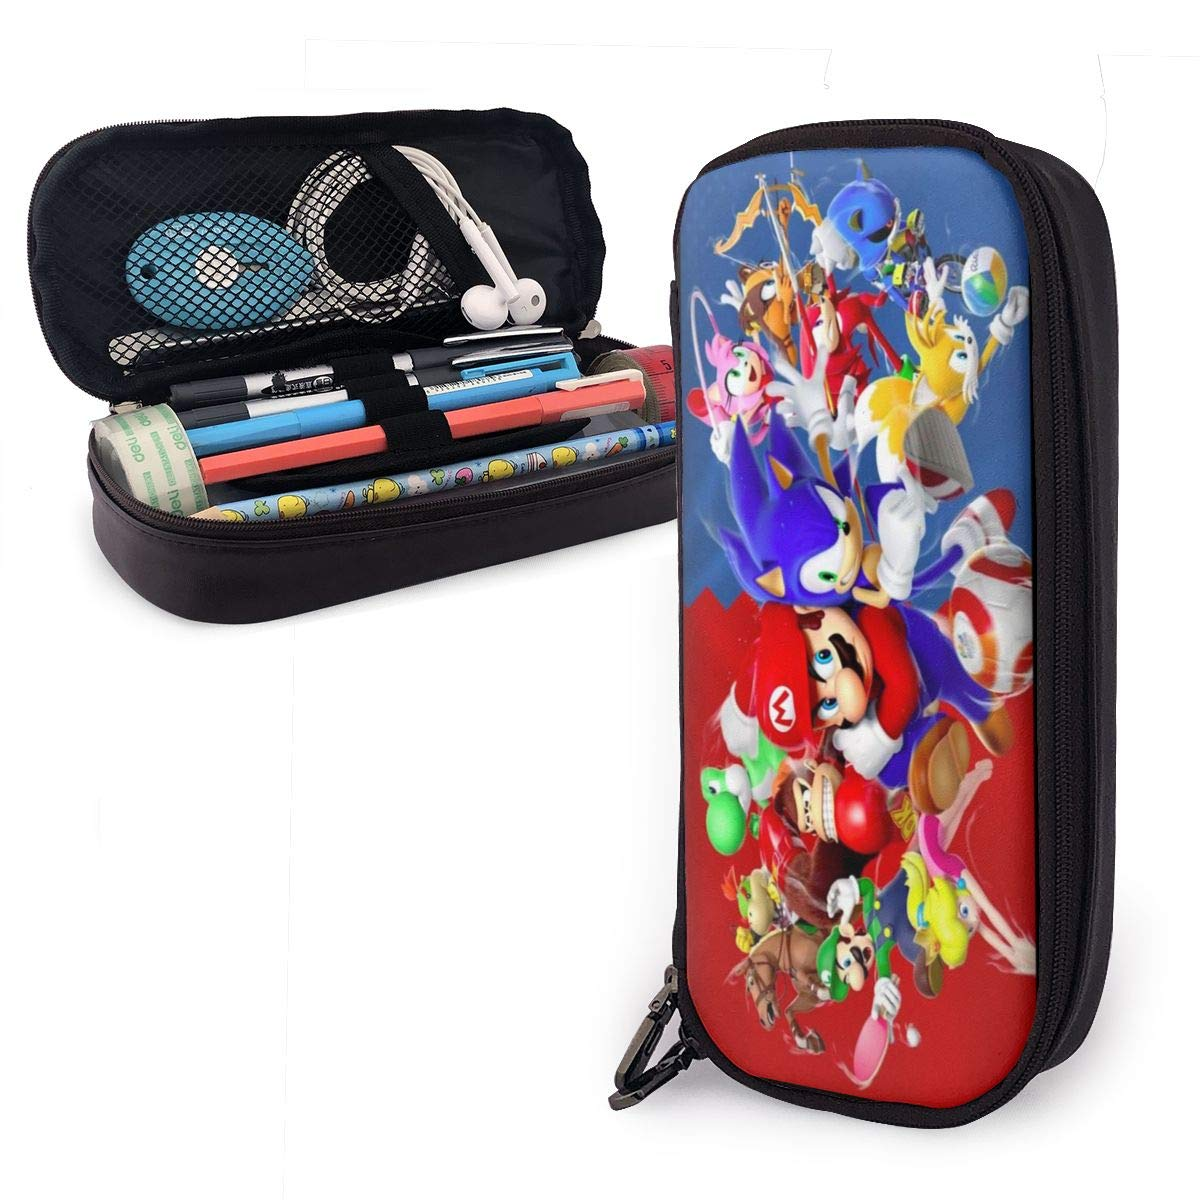 Pencil Case So-Nic and M-Ari-O Leather Stationery Bag Durable Zipper Large Capacity Pencil Box for School Office Black